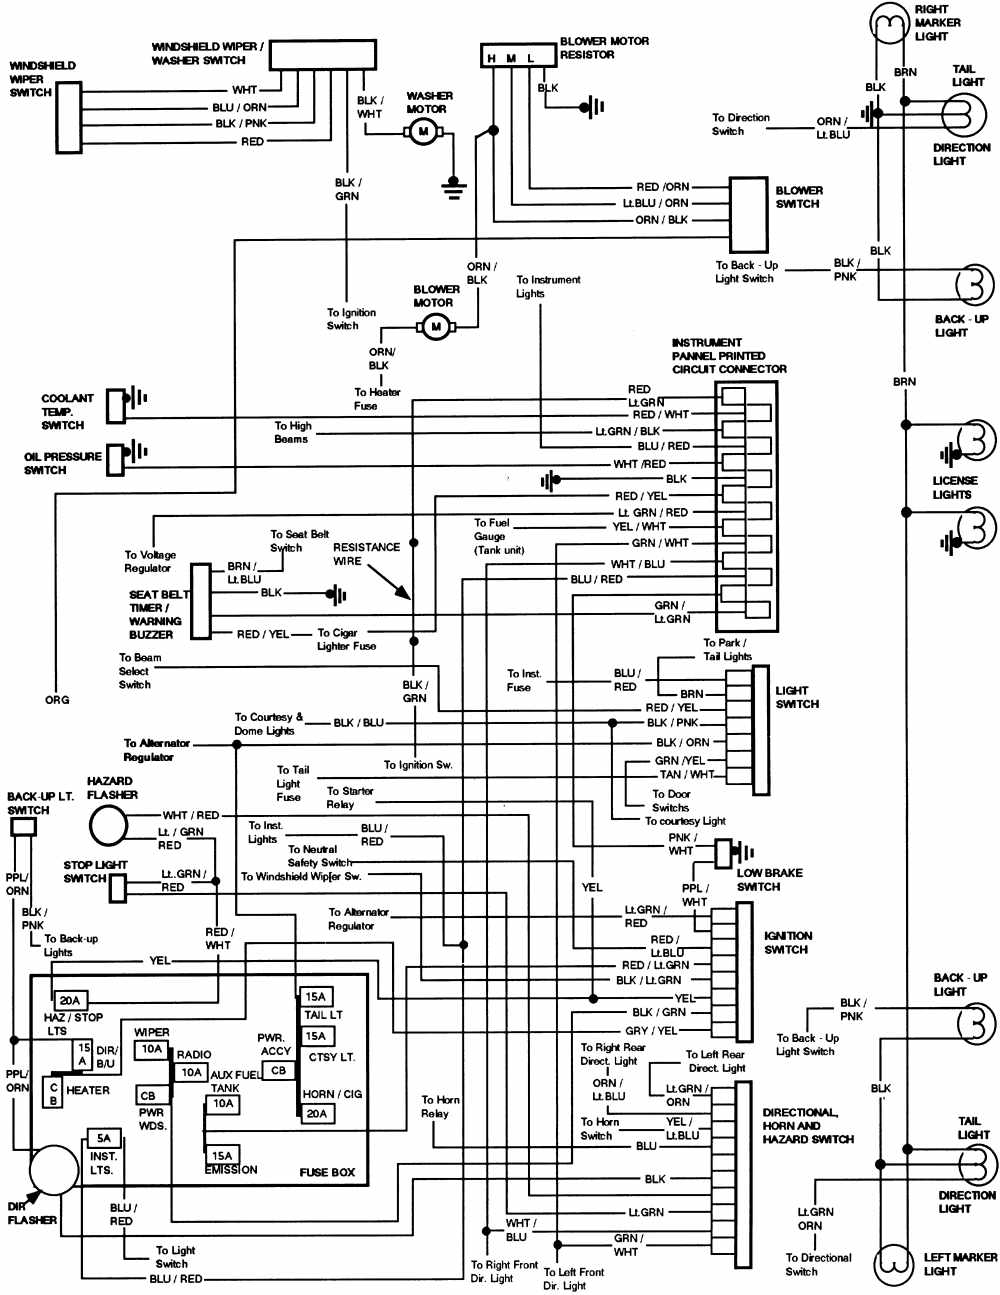 ford bronco 1984 instrument panel wiring diagram | all ... 1986 ford thunderbird radio wiring diagram 1996 ford thunderbird radio wiring diagram #7